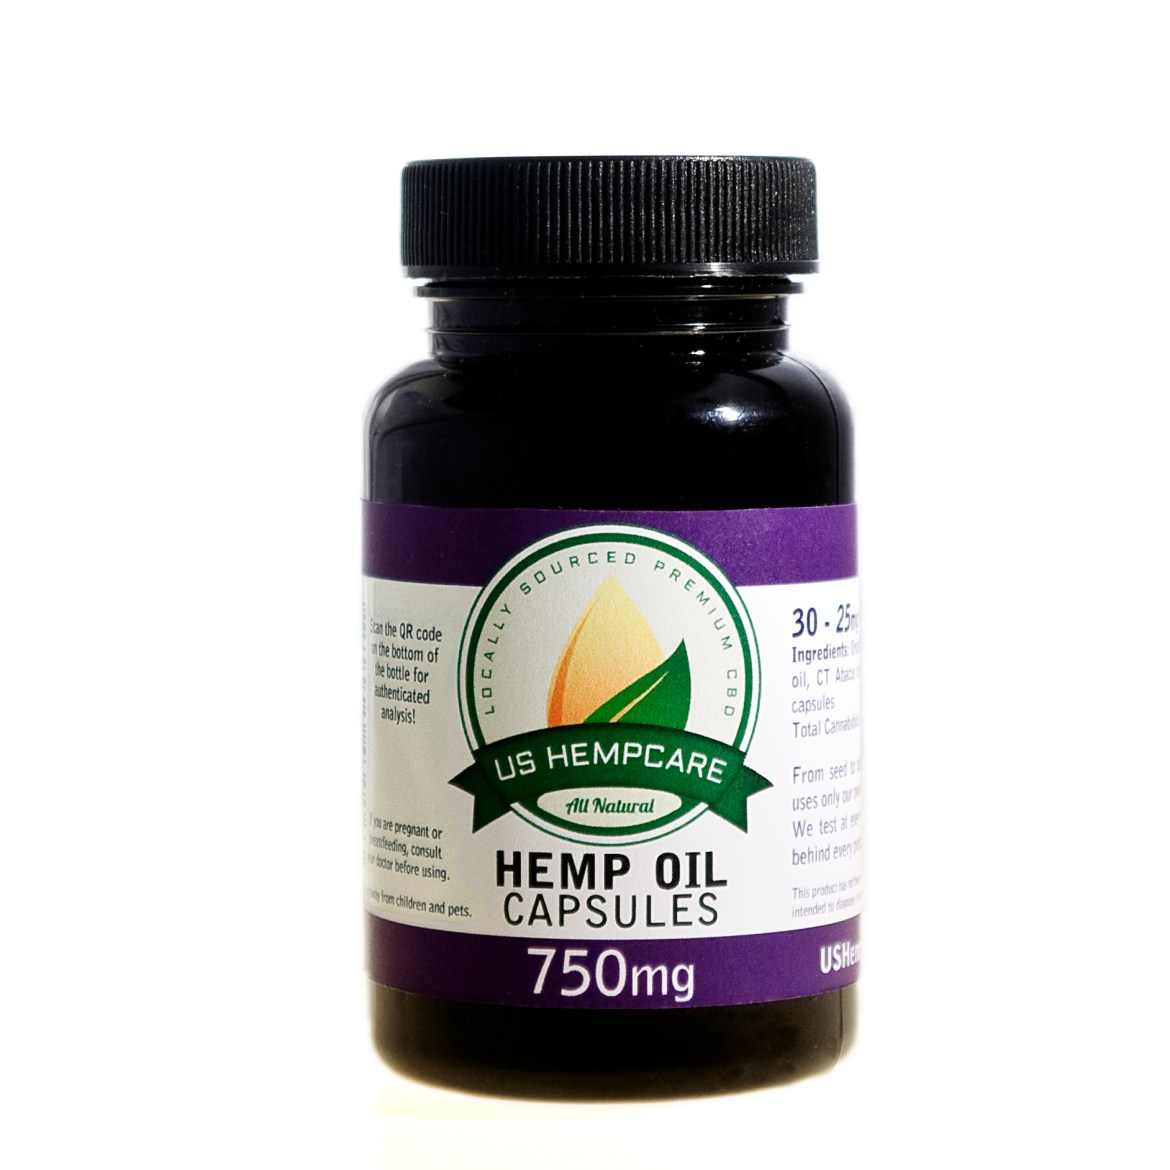 Hemp Oil Capsules - 750mg 10030